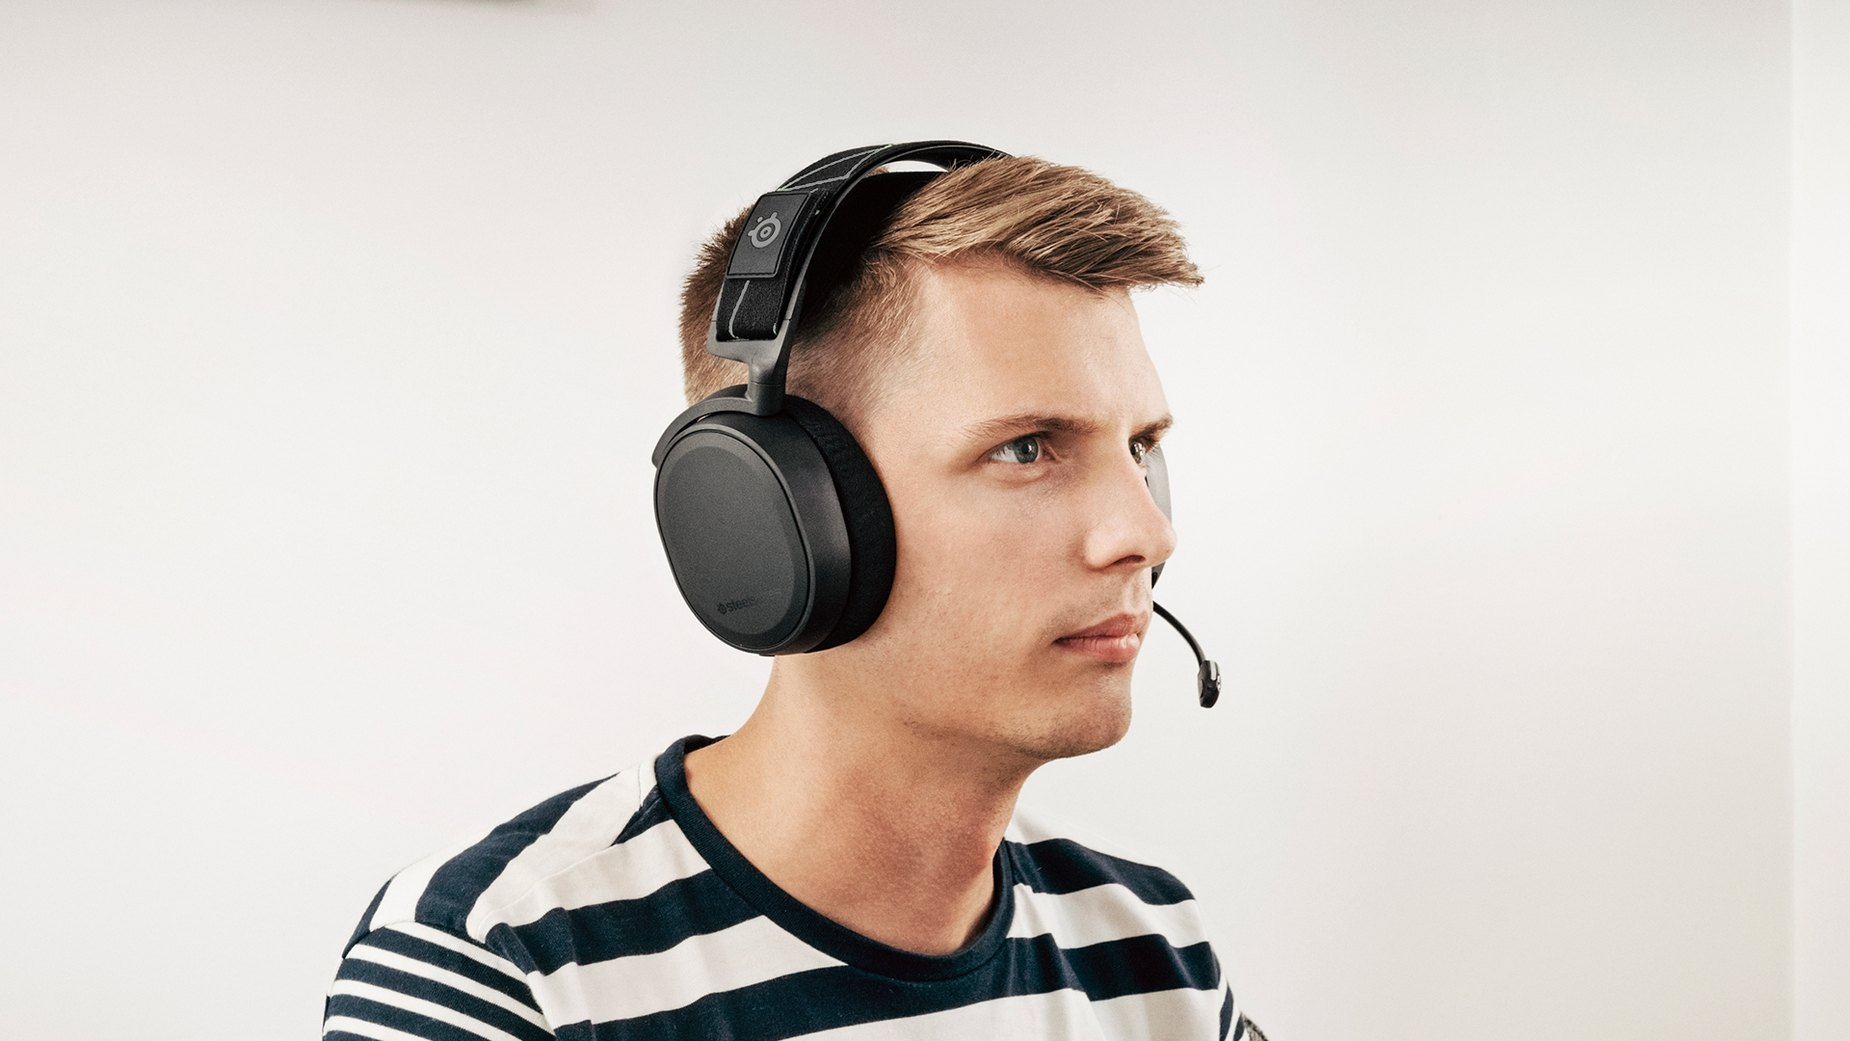 A person wearing an Arctis 7 wireless headset